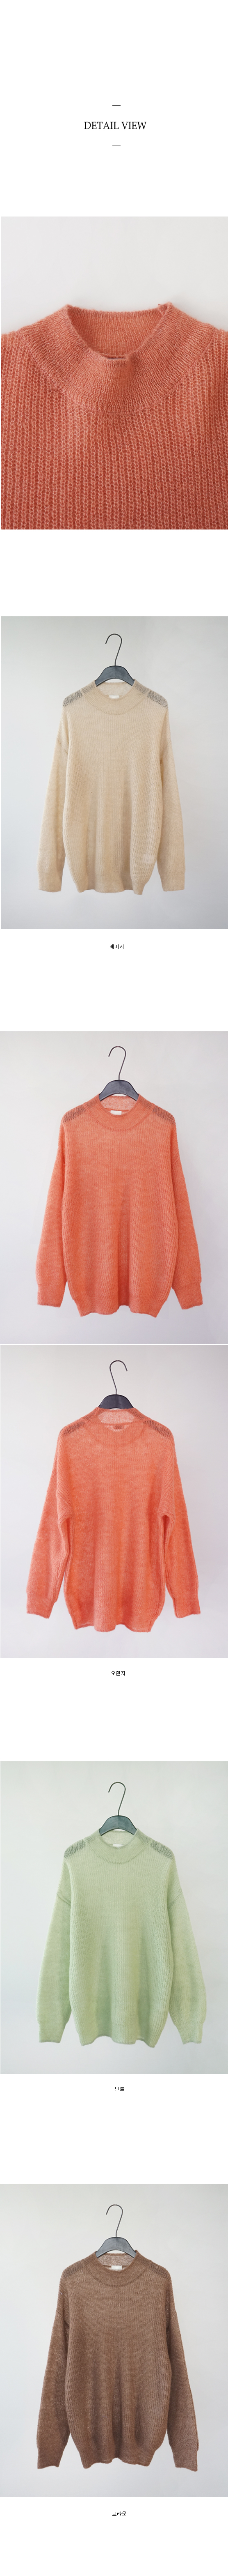 mohair sheer mock-neck knit (4colors)